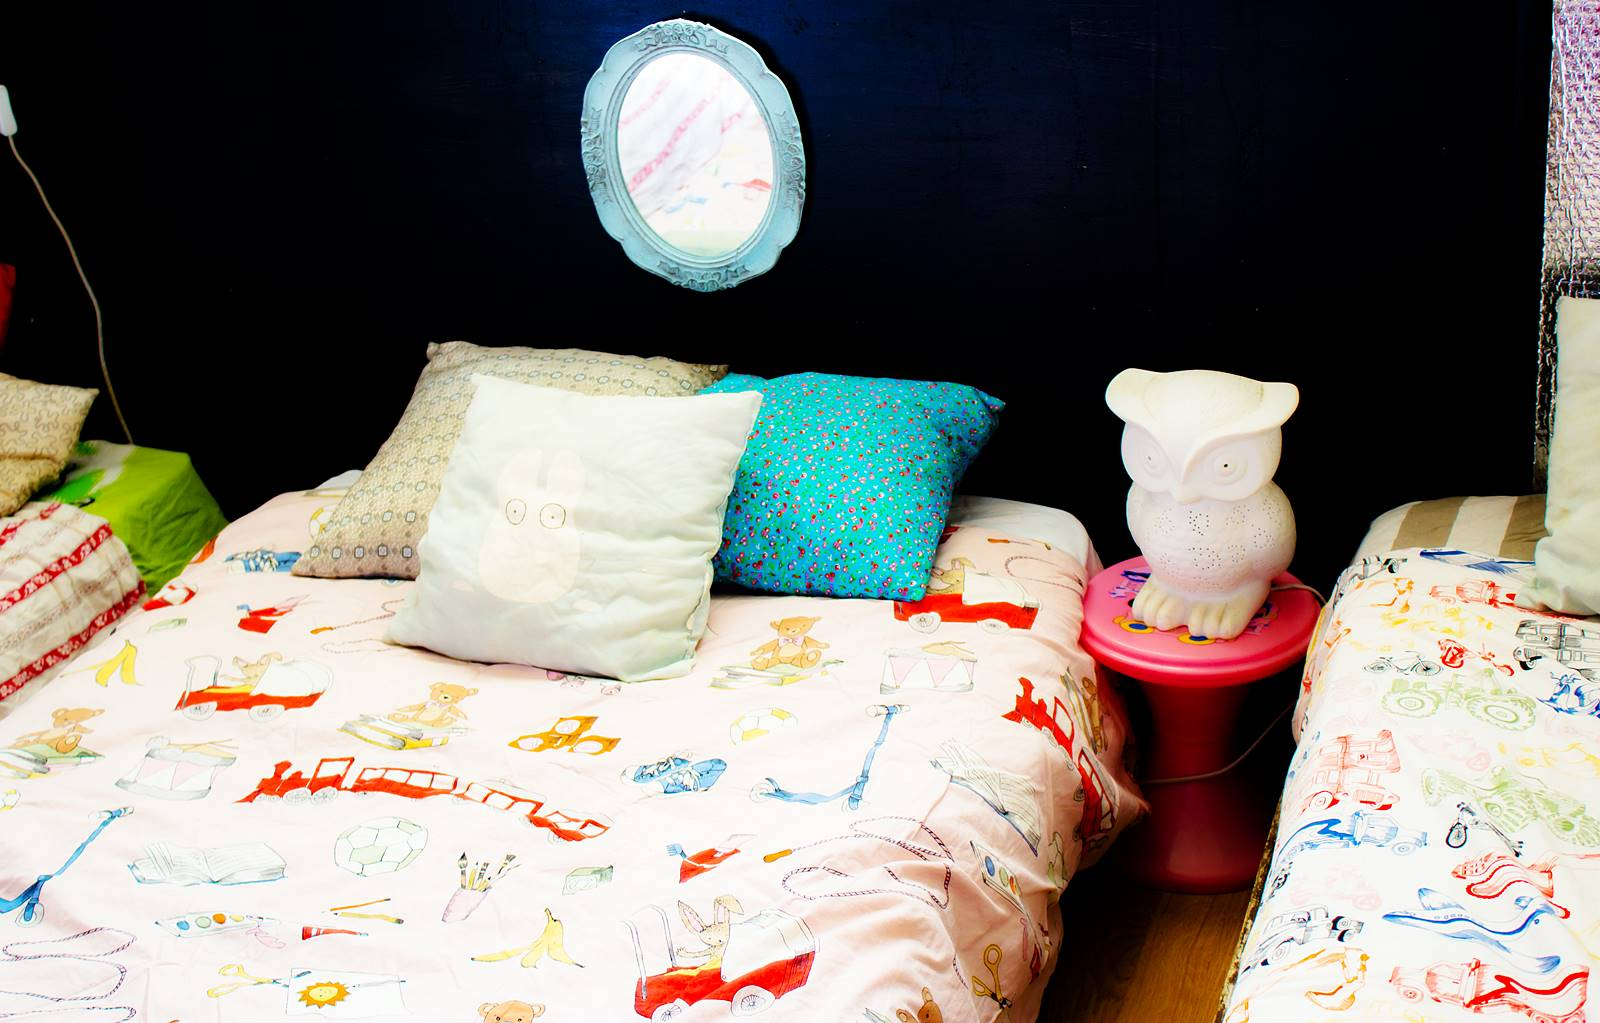 Diy chambre dortoir enfant france 6blog